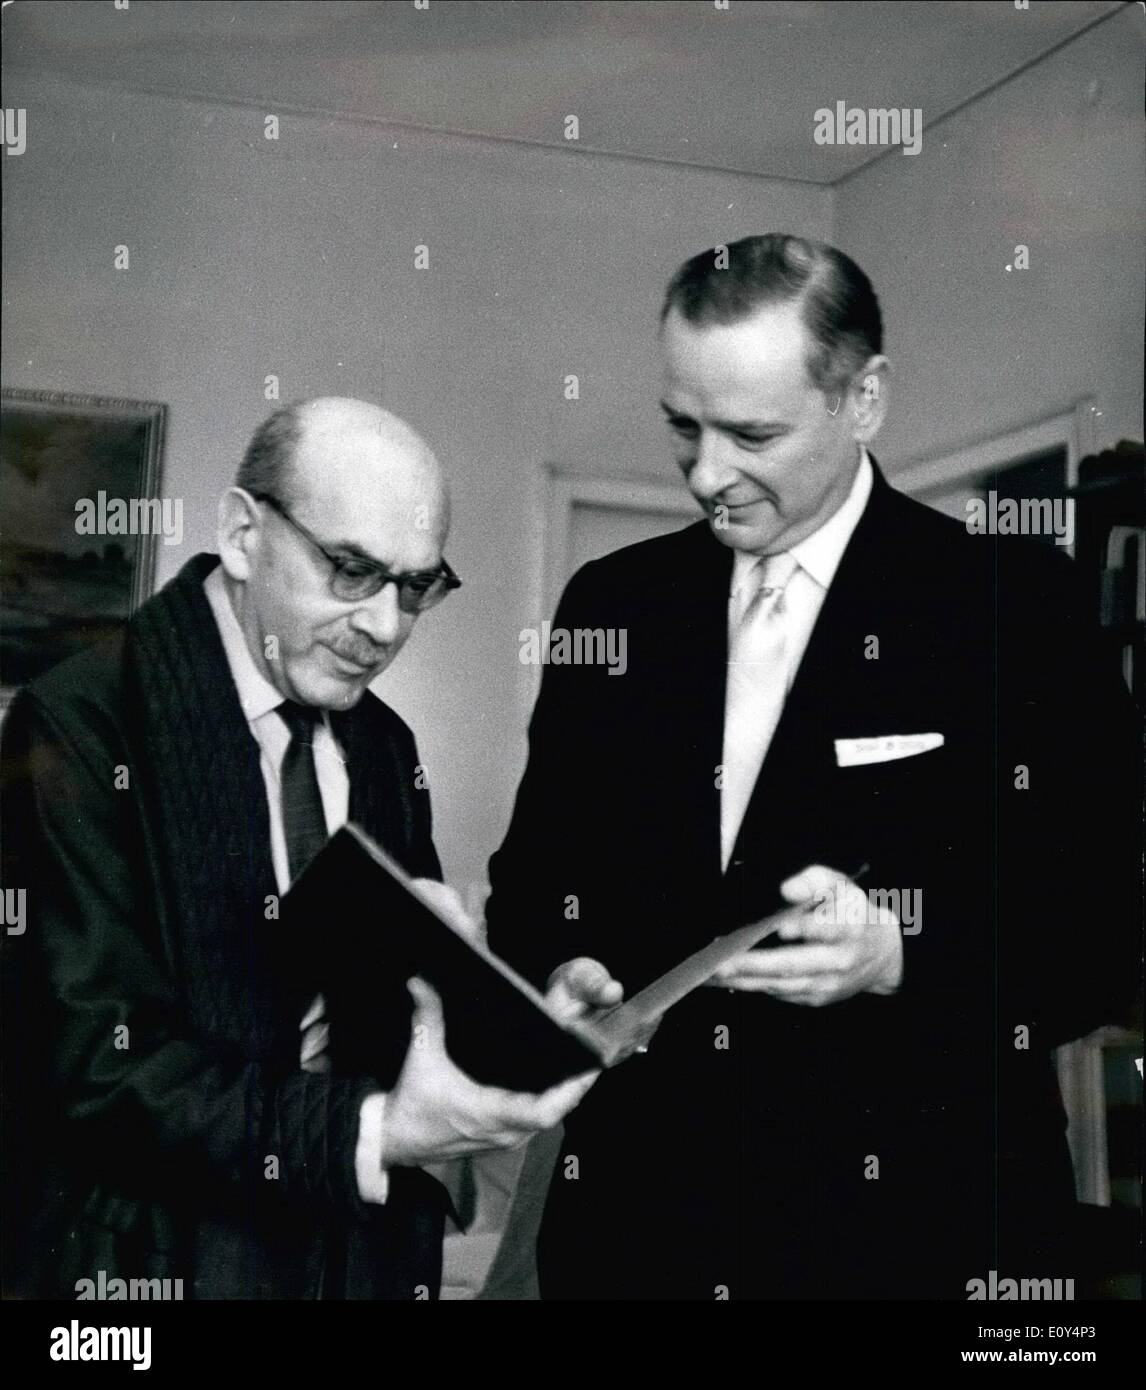 Aug. 08, 1968 - Head Of Bartok Archives In New York Visits Professor Bence Szabolcsi In Budapest: Dr. Benjamin Suchoff, - Stock Image